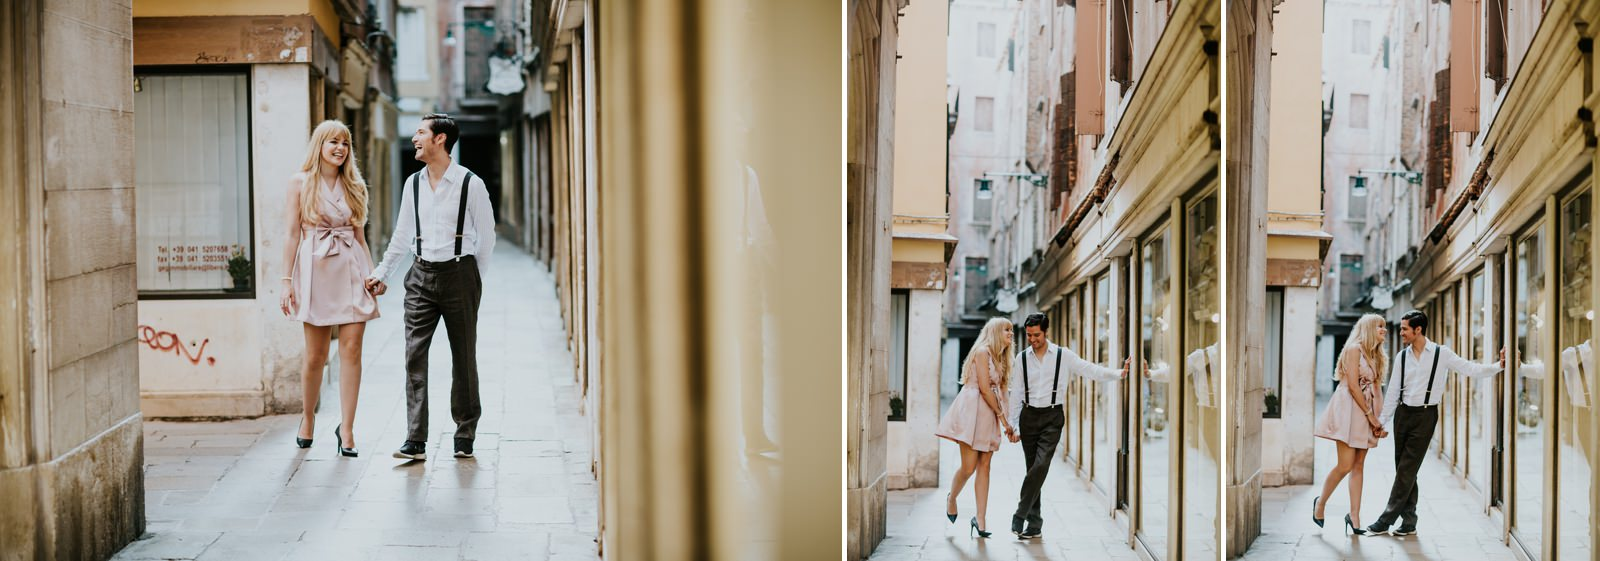 Honeymoon portraits Venice — AV-Photography Venice Wedding - Portrait Photographer